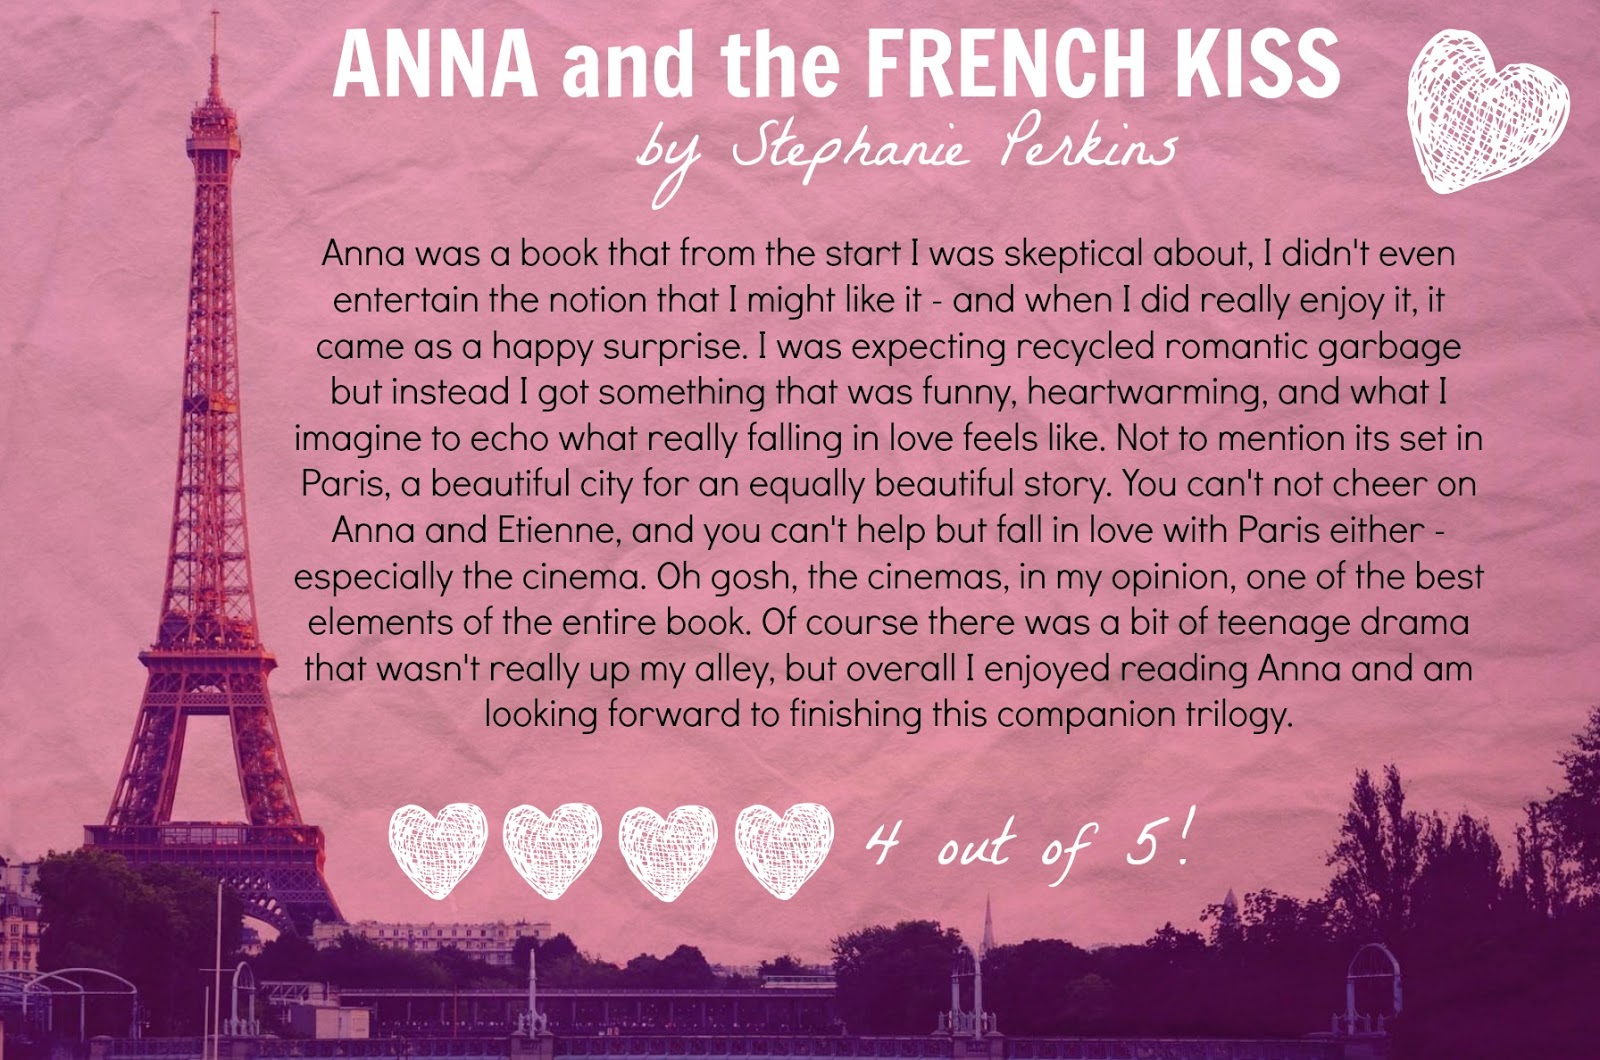 anna and the french kiss deutsch